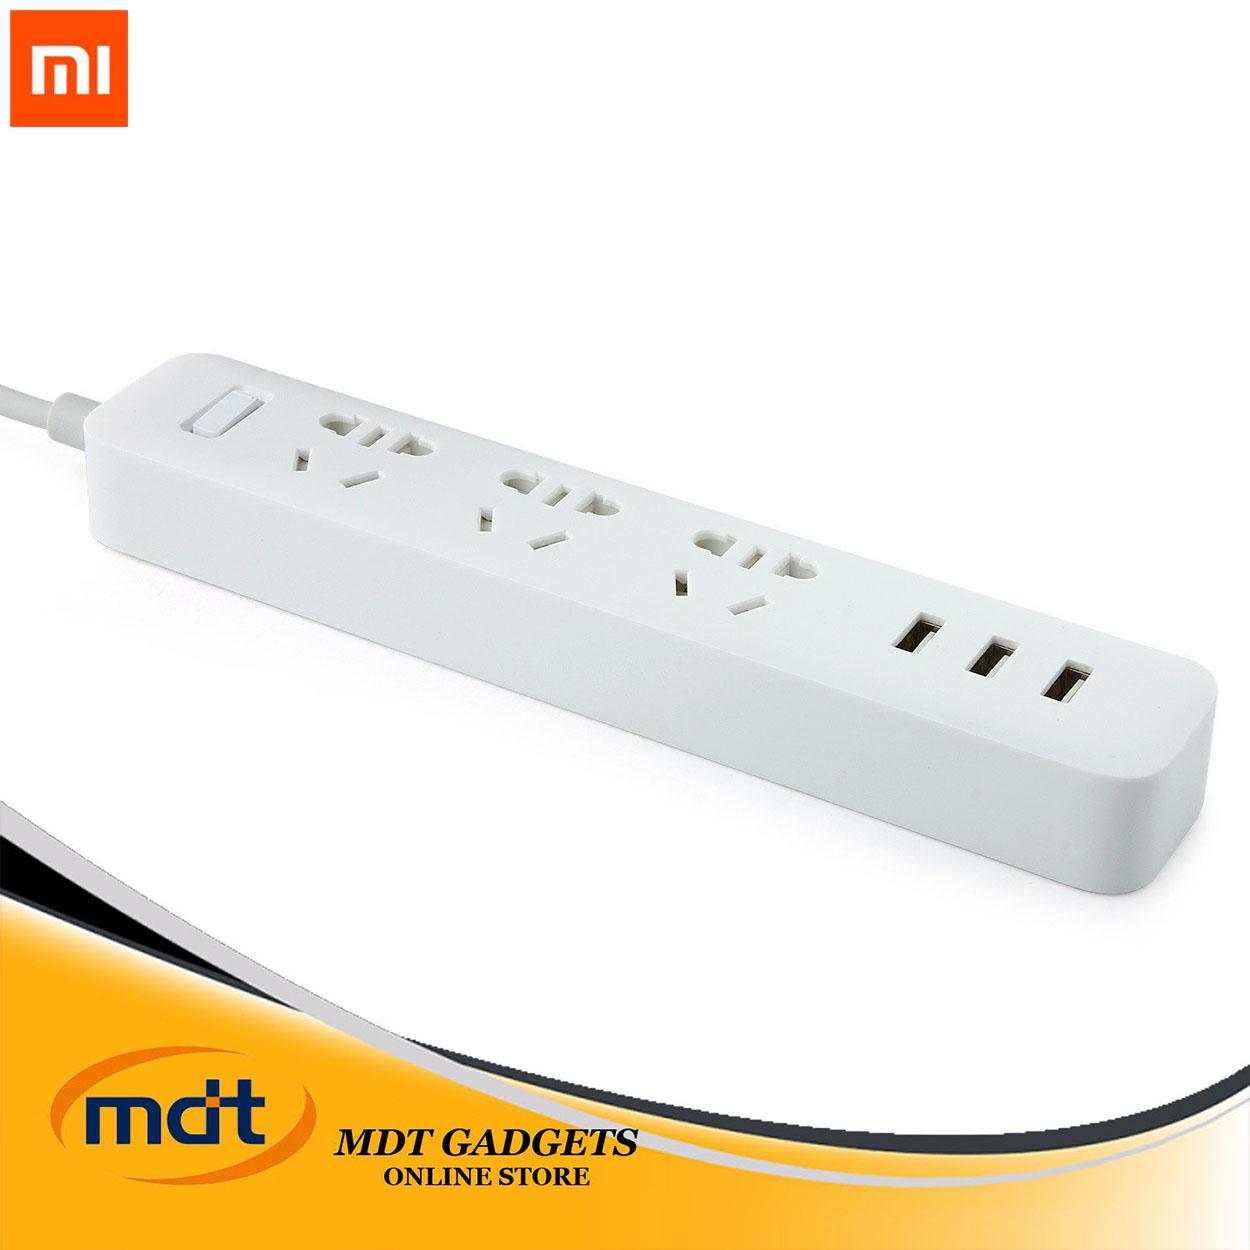 Xiaomi Mi Power Strip 3 Sockets / 3 Usb Ports Extension By Mdt Gadgets.